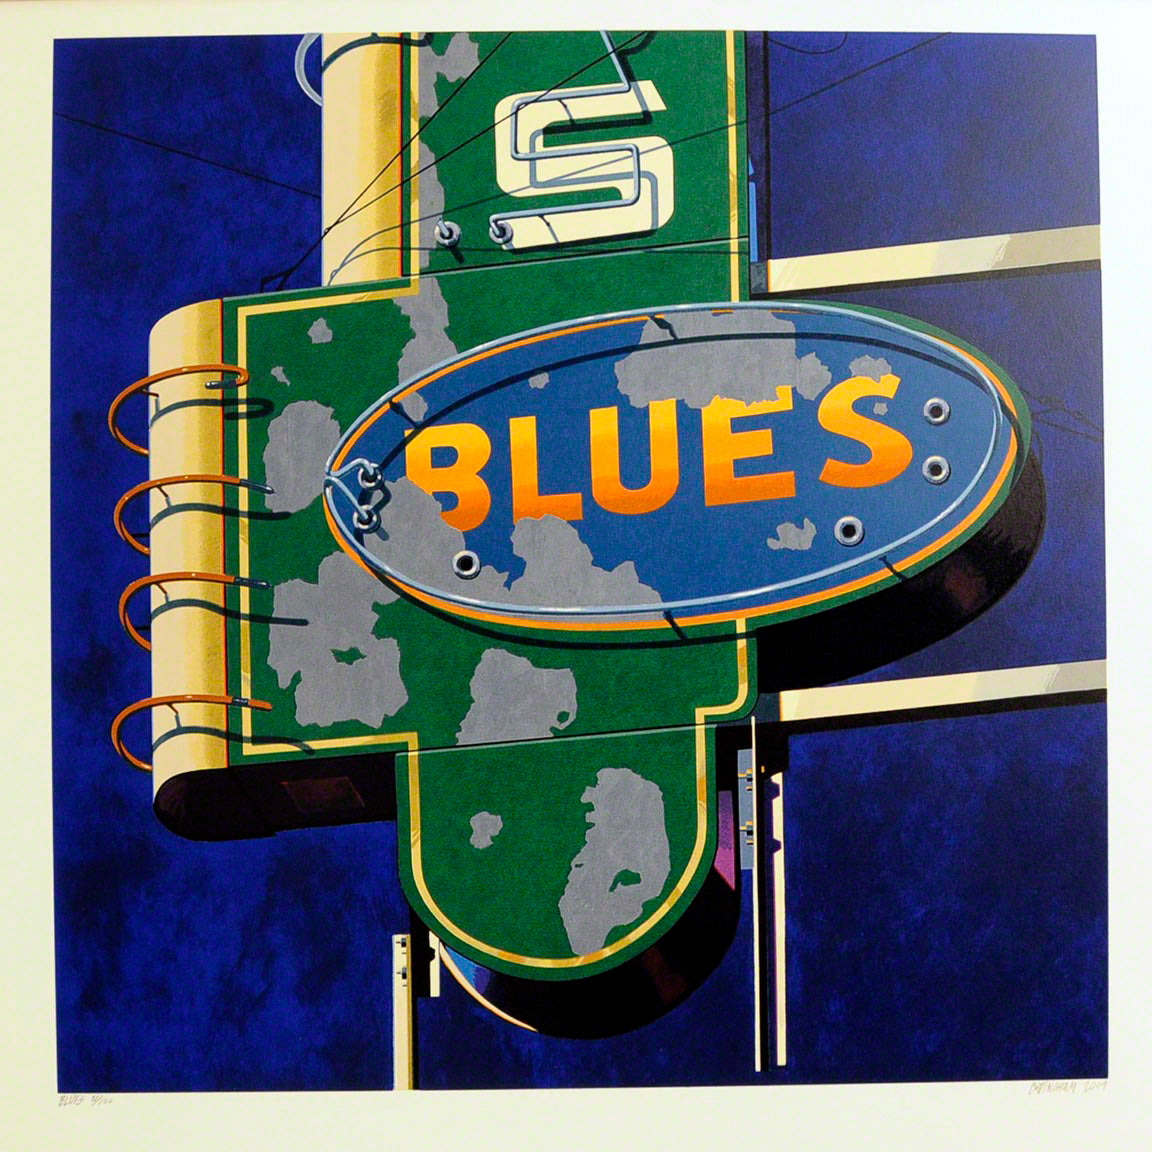 American Signs BLUES by Robert Cottingham